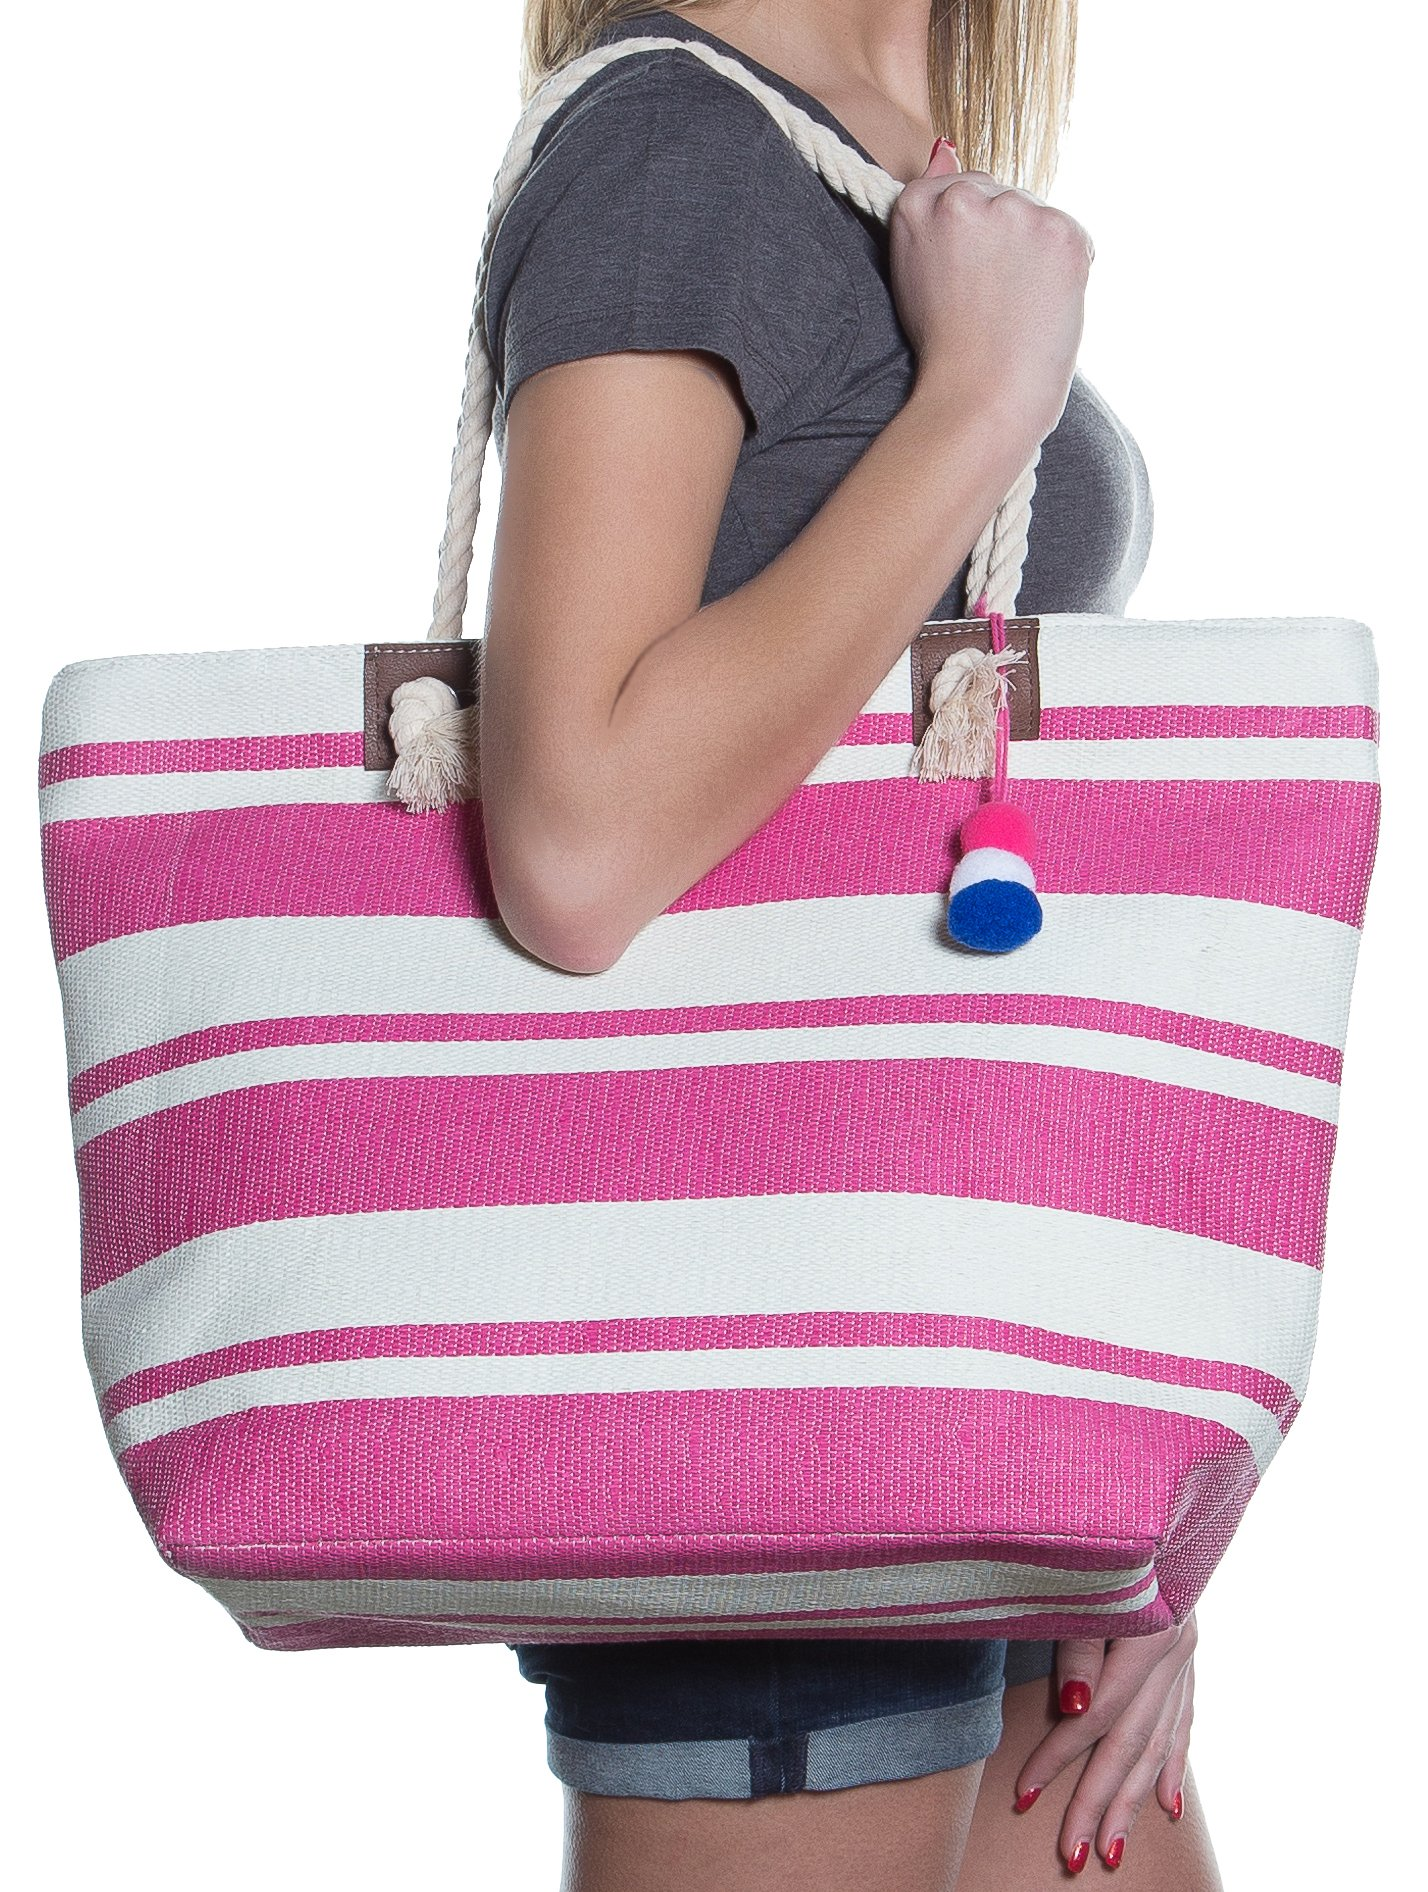 Beach Bag By Pier 17 - Beach Tote Bag withTop Zipper Closure, Cotton Rope Handles, 2 Inner Pocket, Built-In Inner Backing for Extra Durability - L20''xH15''xW6'' (Pink - White)